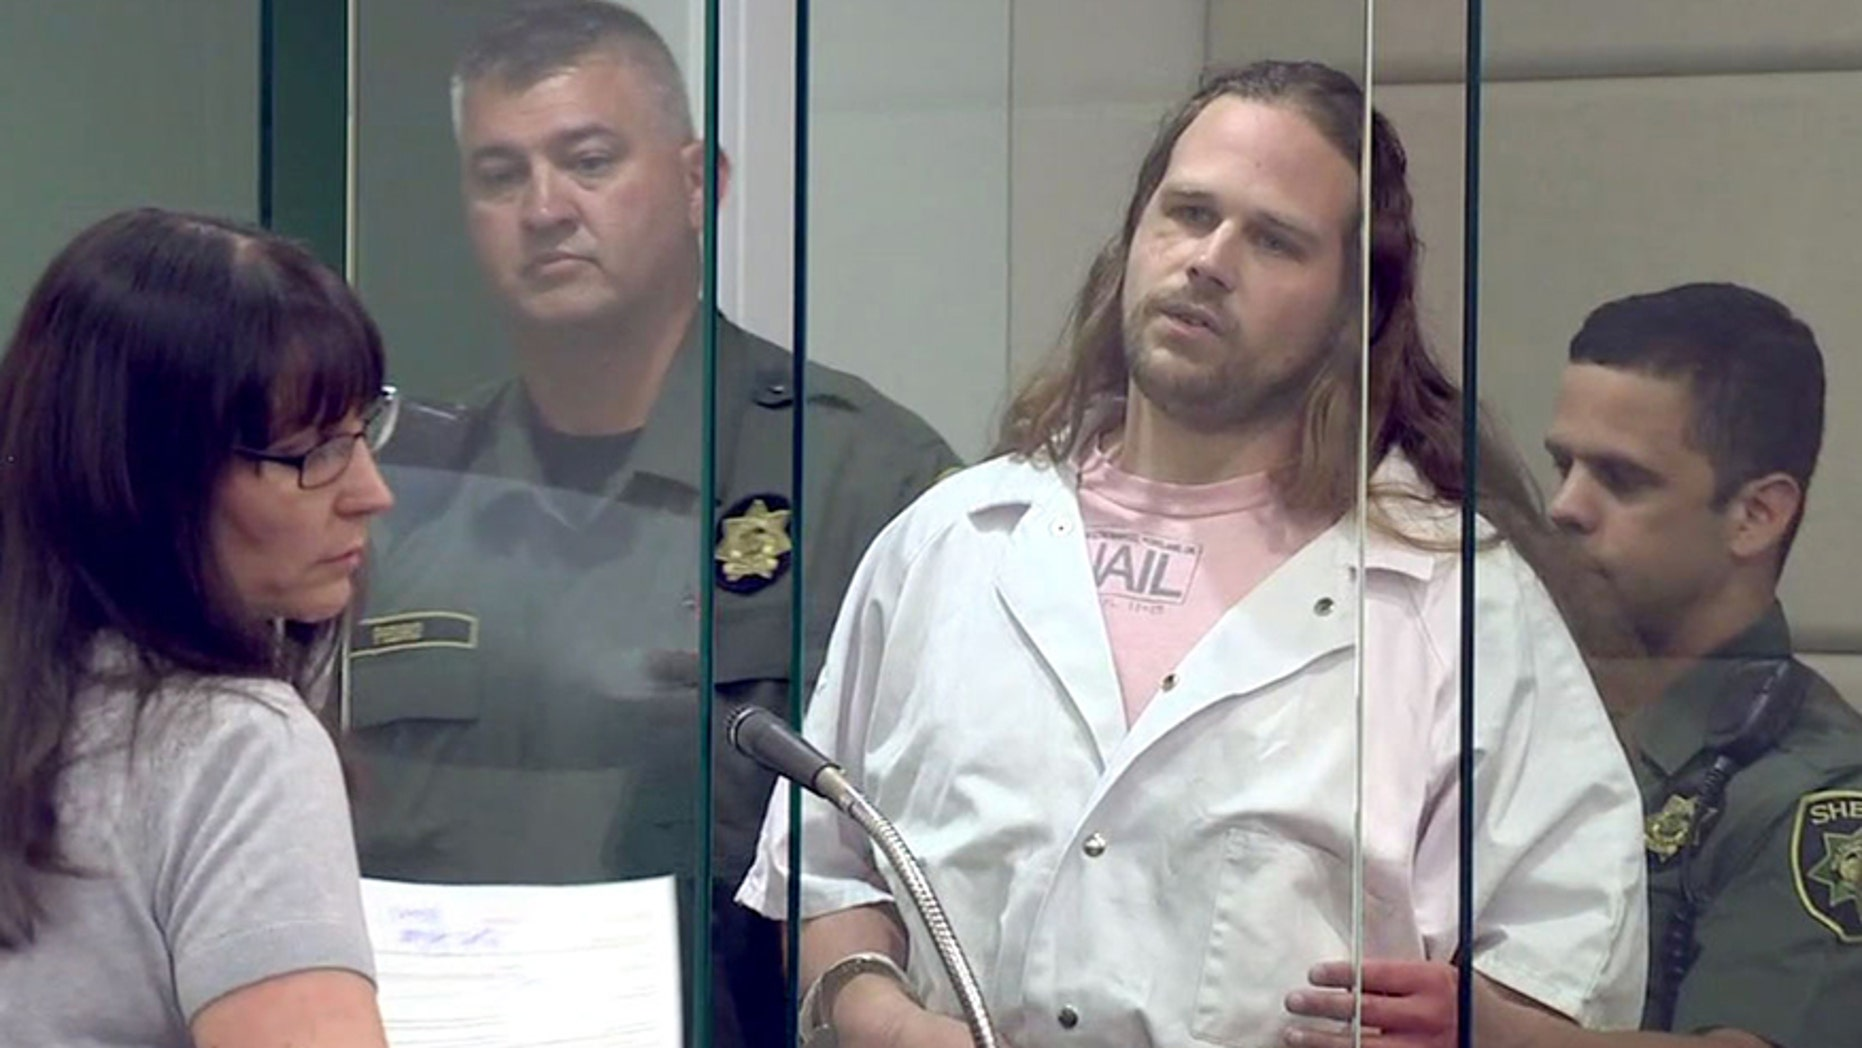 June 7, 2017: Jeremy Christian claimed in a courtroom Wednesday that one of the victims is to blame for a deadly stabbing attack in Portland, Ore.